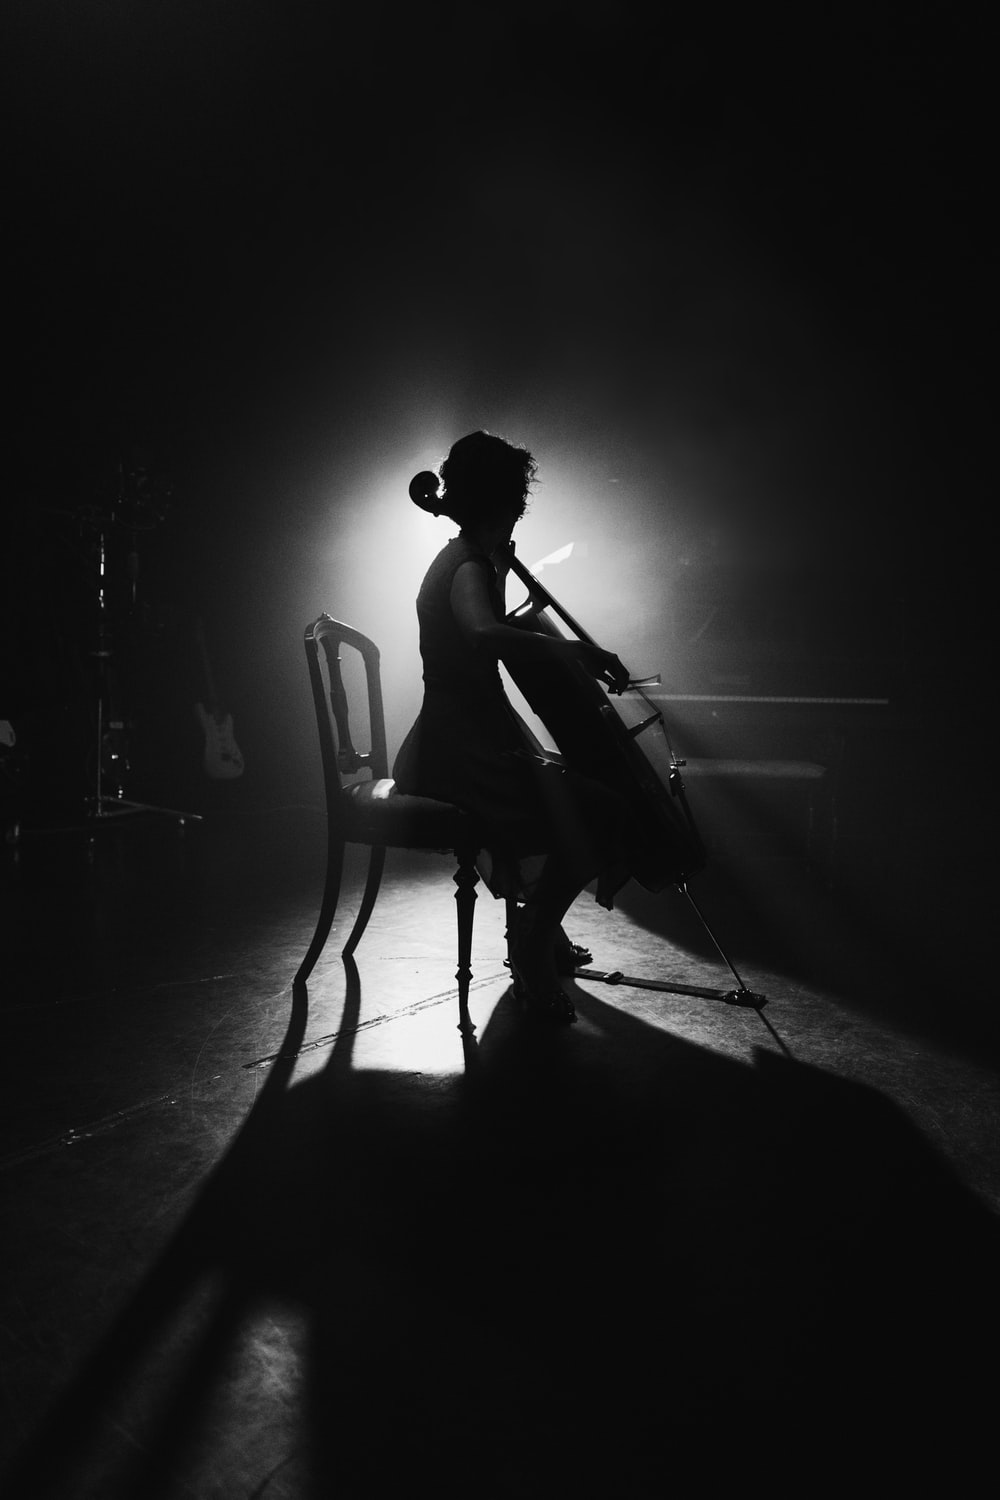 grayscale photo of person playing music instrument